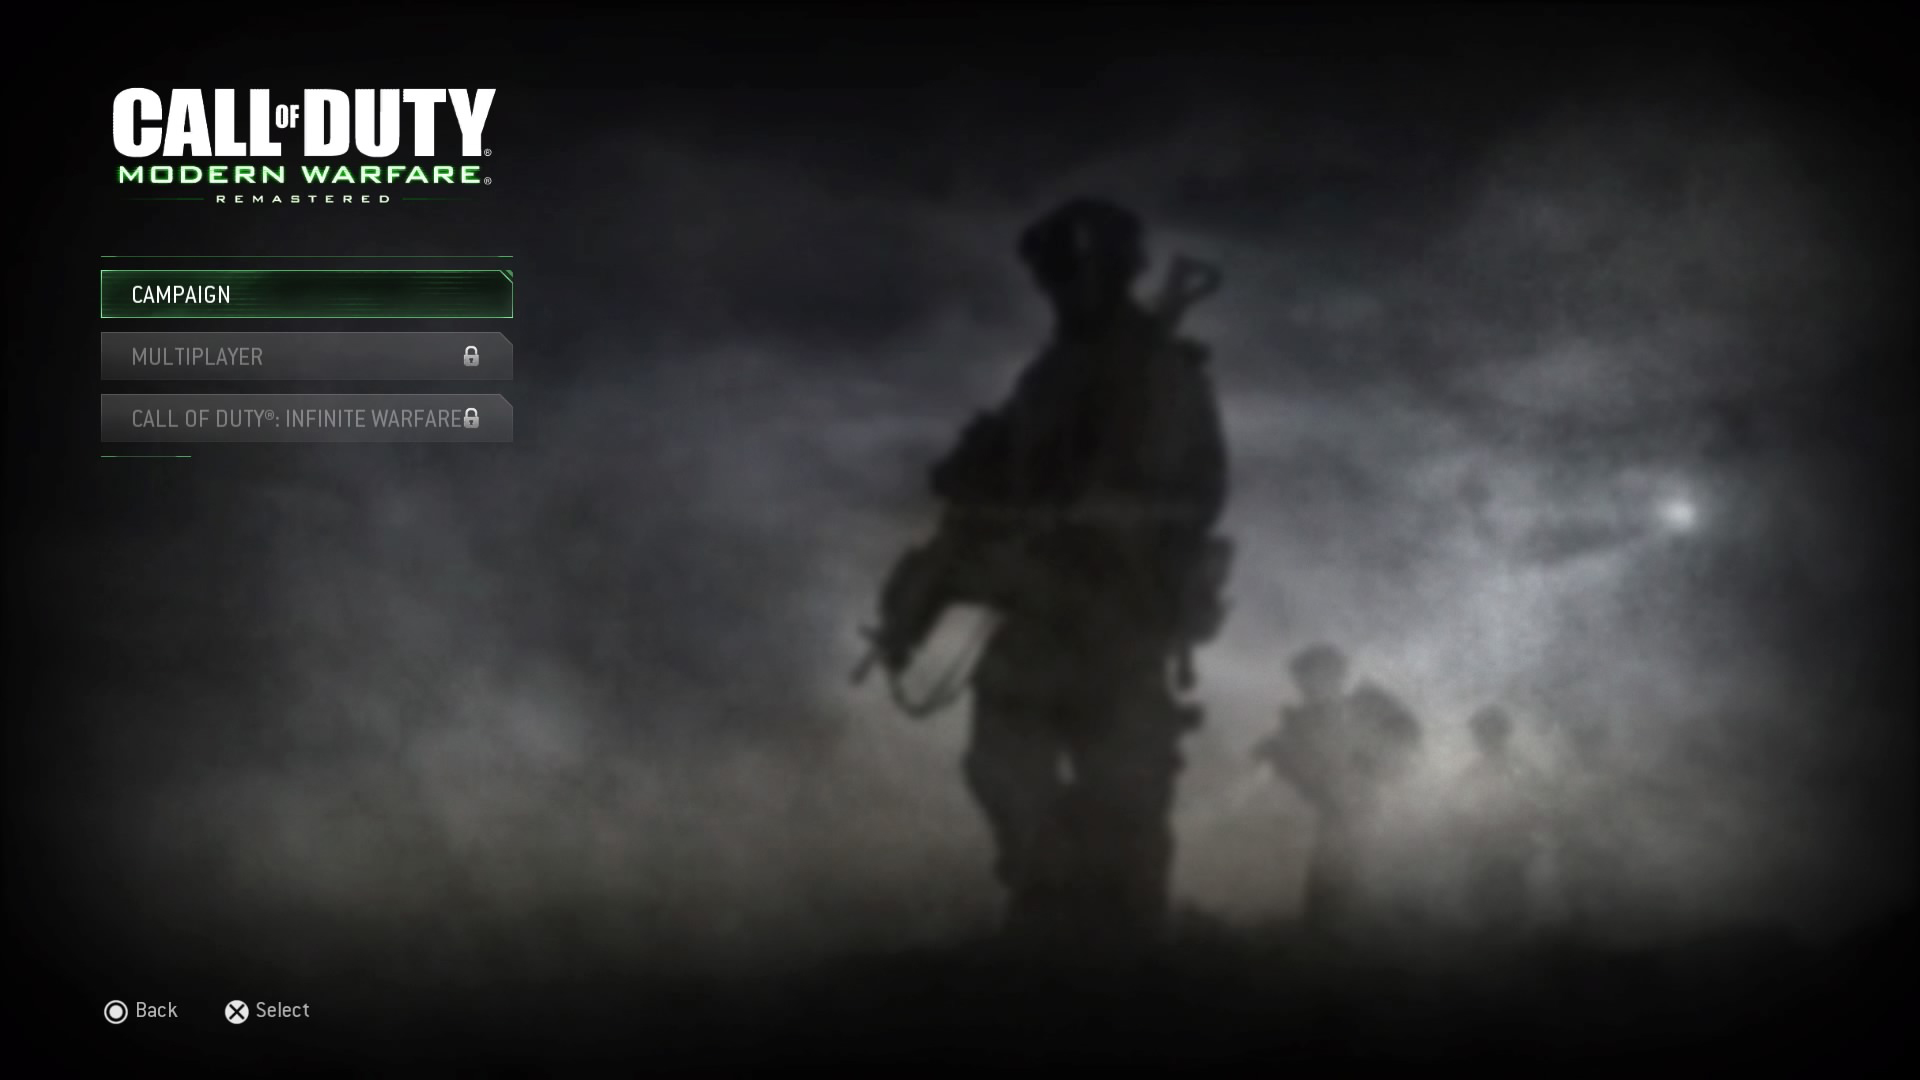 Call of Duty: Modern Warfare Remastered PS4 title campaign screen